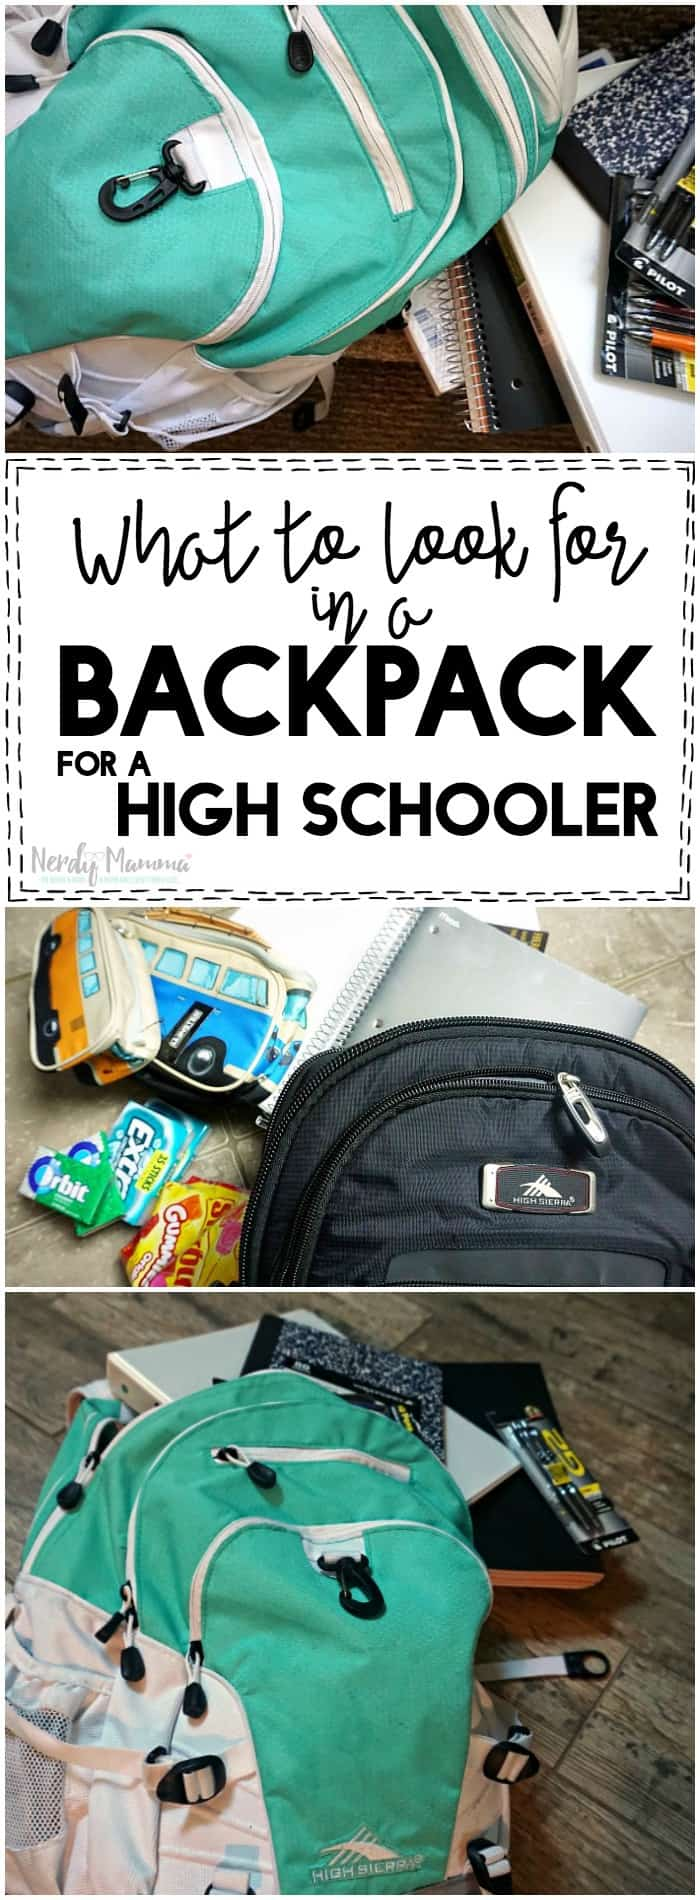 This is a great set of tips for what to look for in a backpack for a high schooler. Totally pinning for back to school shopping.